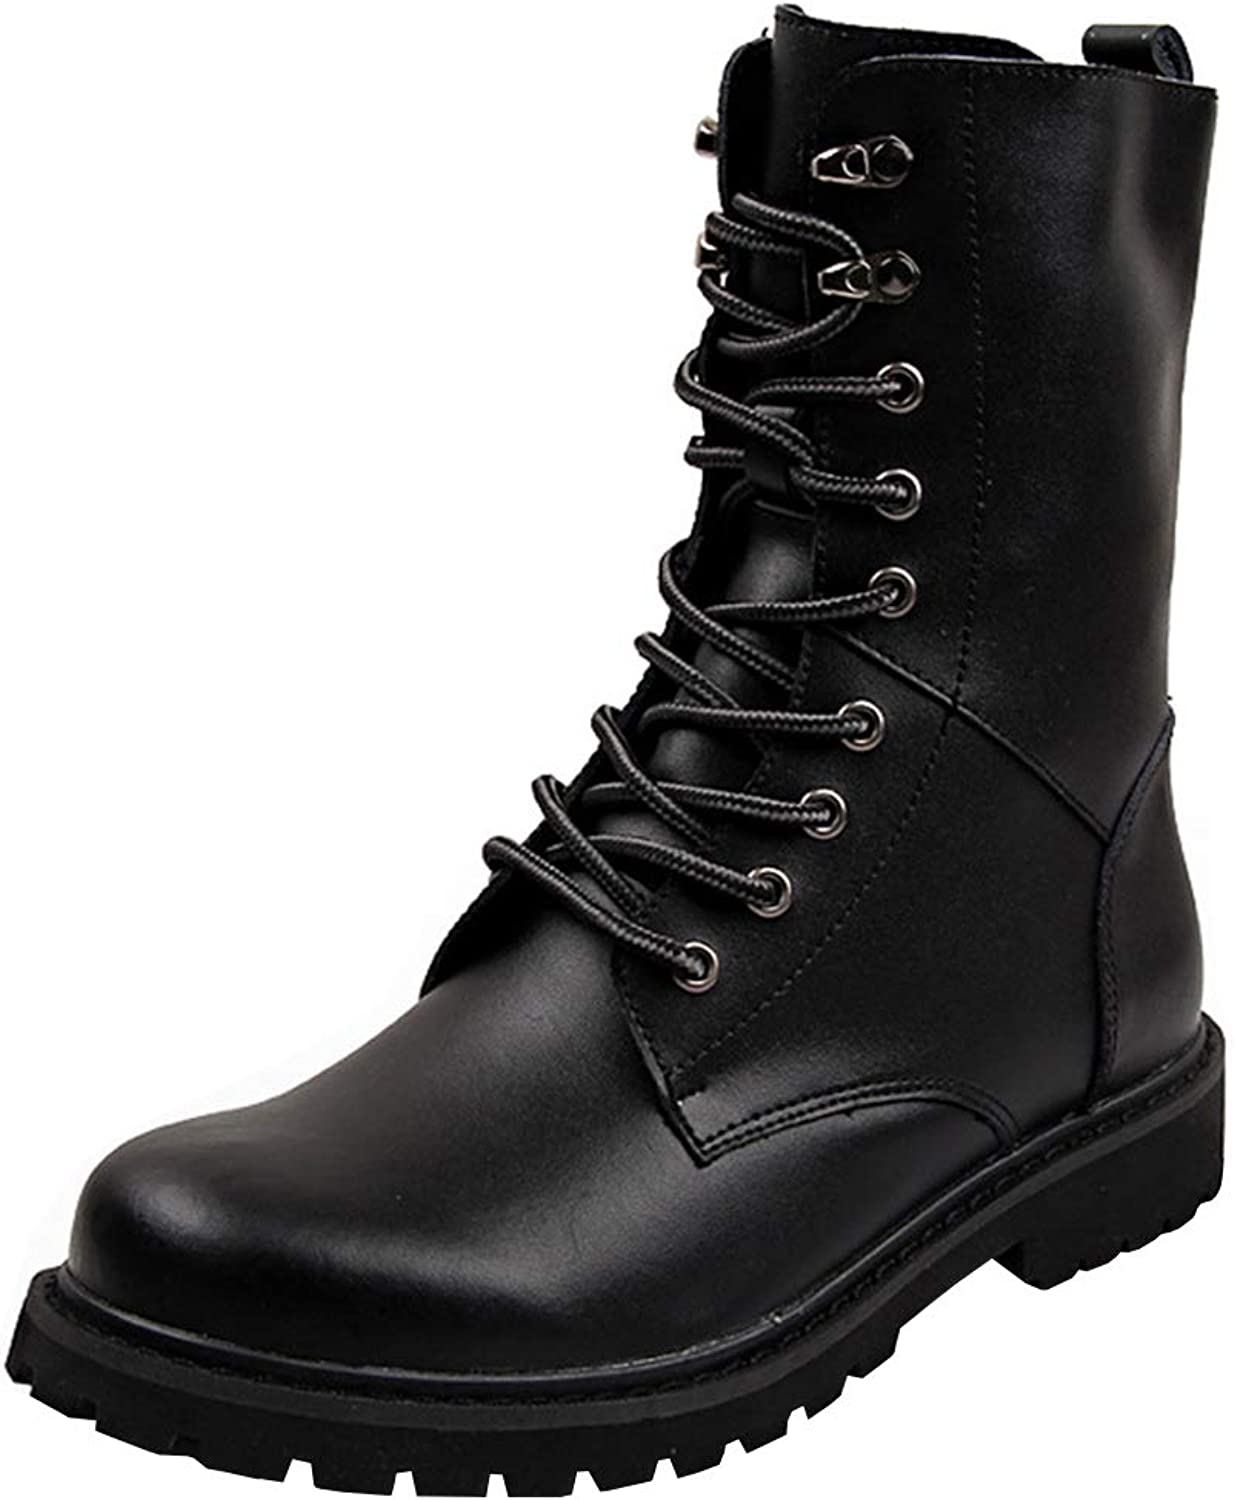 Men's Martin Boots Casual high Boots Bare Boots,Outdoor Waterproof Anti-Skiing Boots,Punk Leather Boots Western Cowboy Boots Police Boots